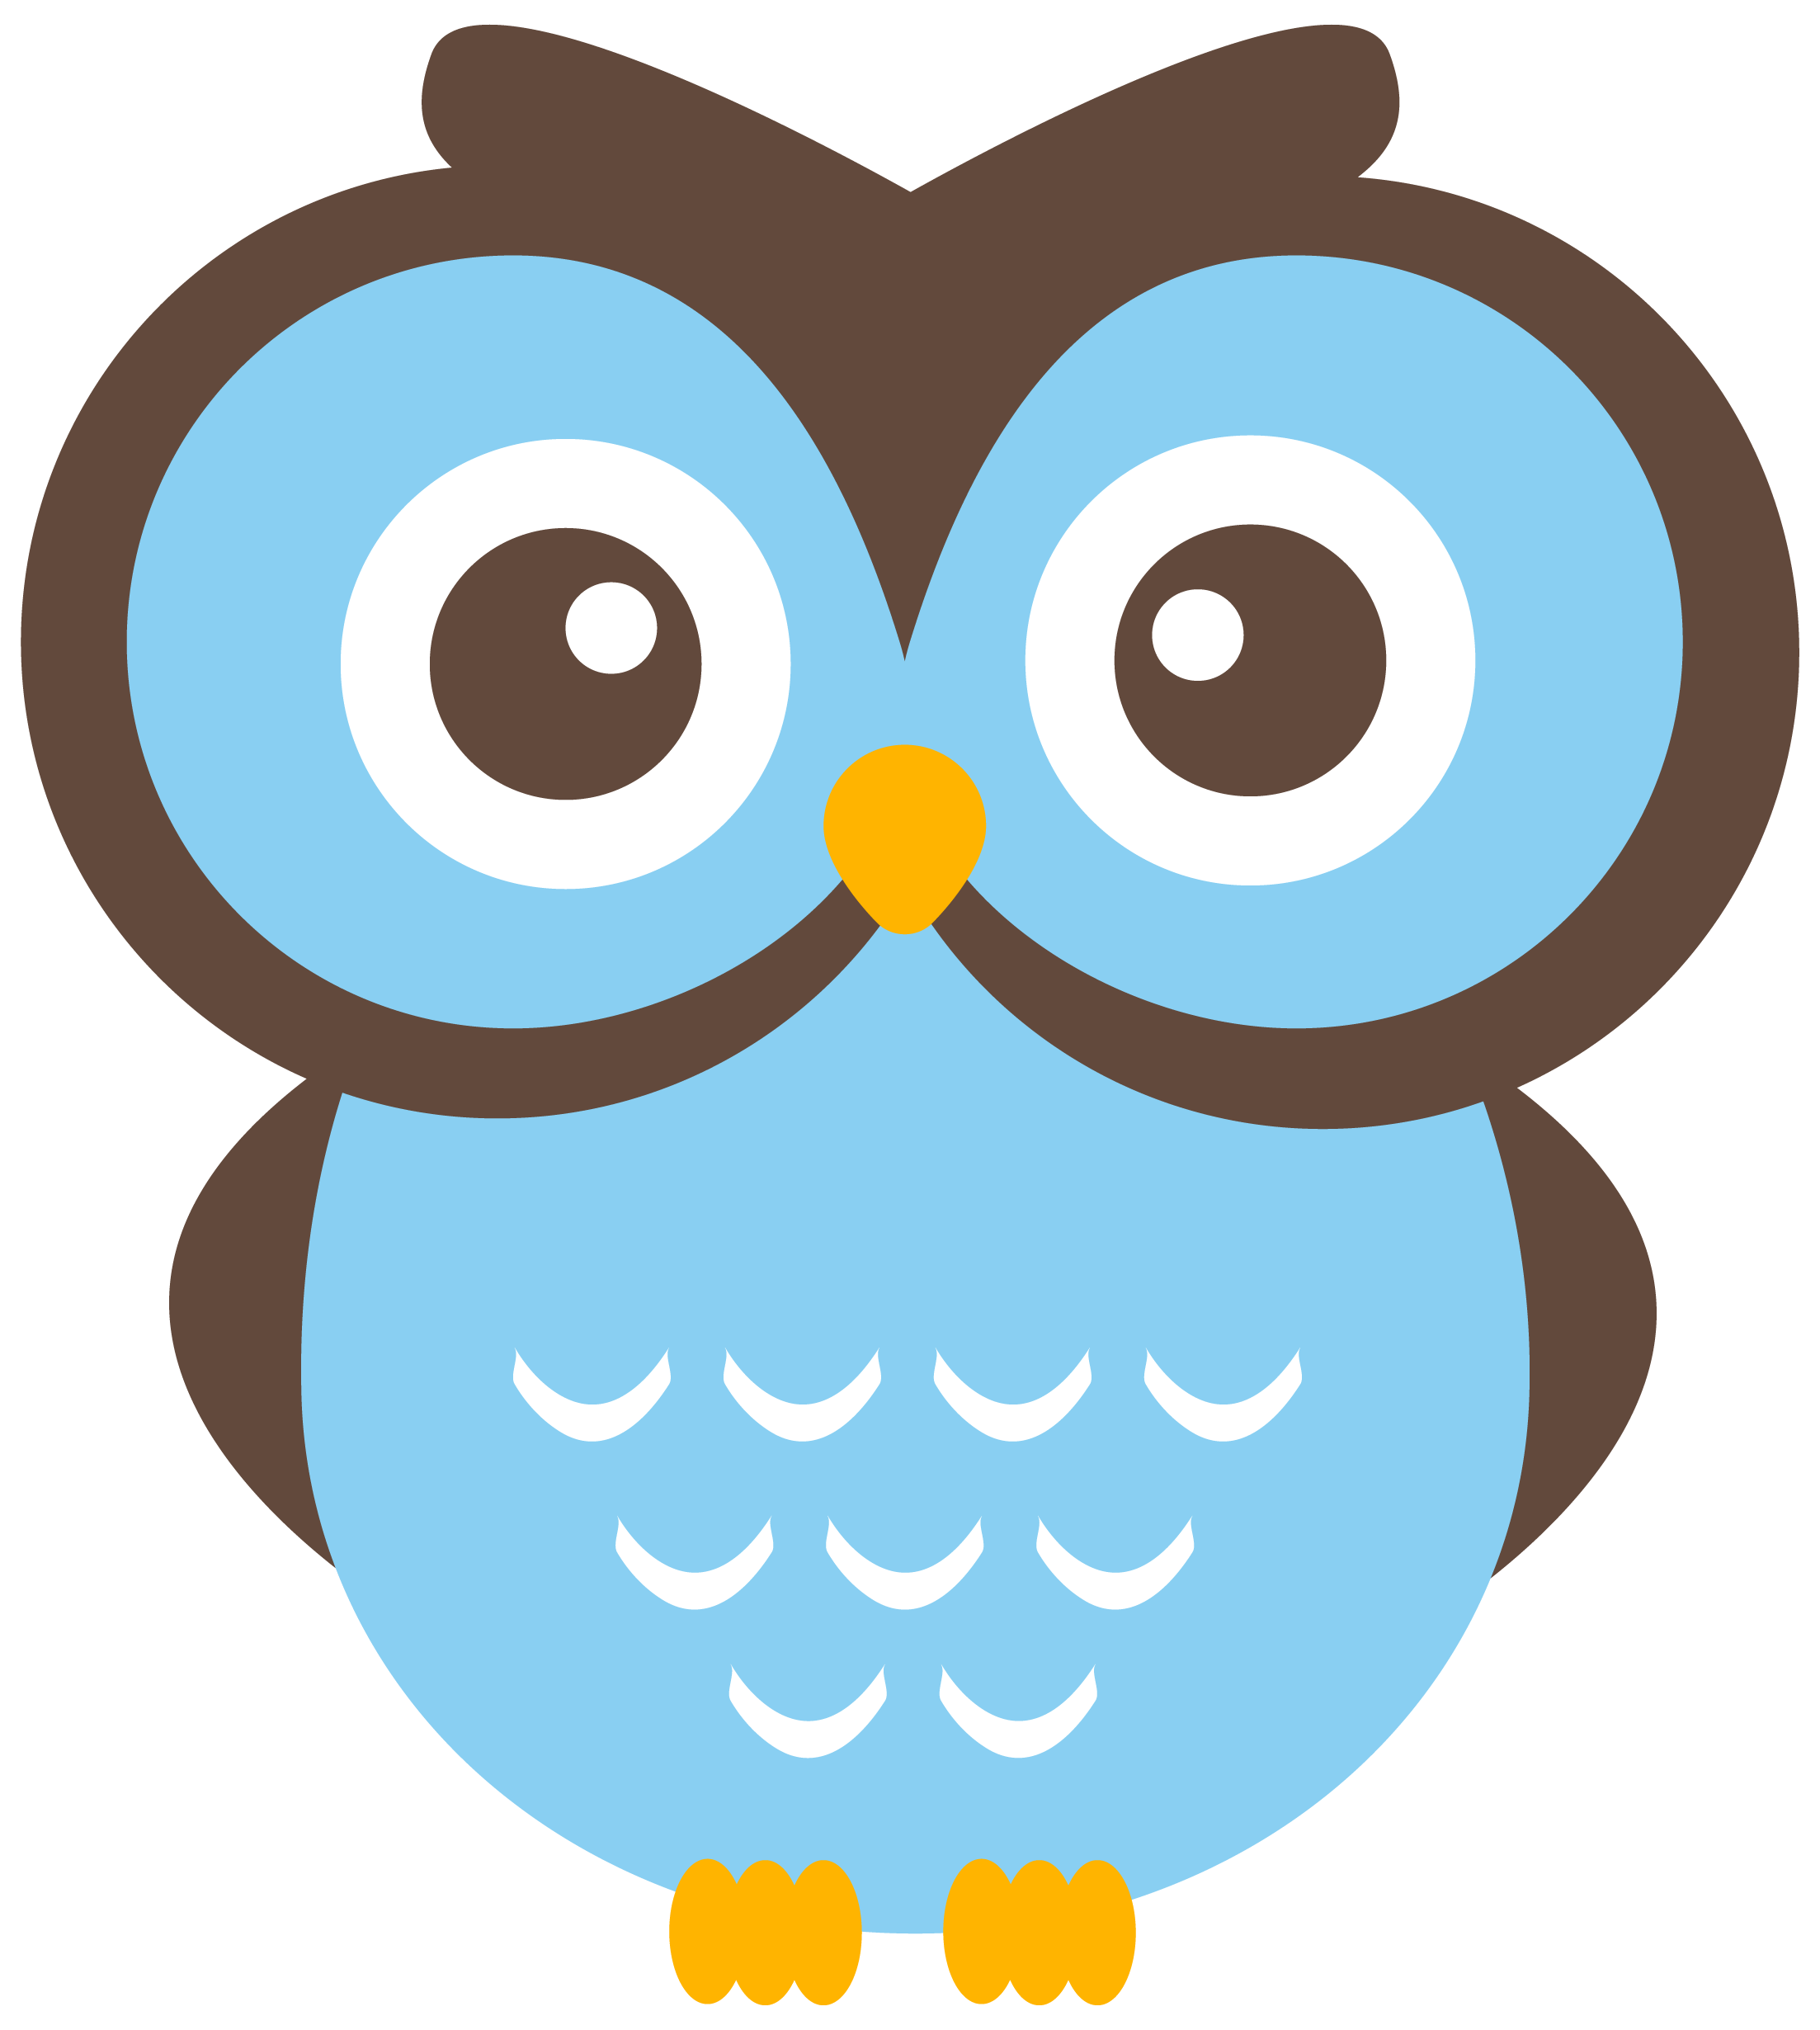 Cute owl on tree clipart graphic free download Cute Owl Png clipart free image graphic free download